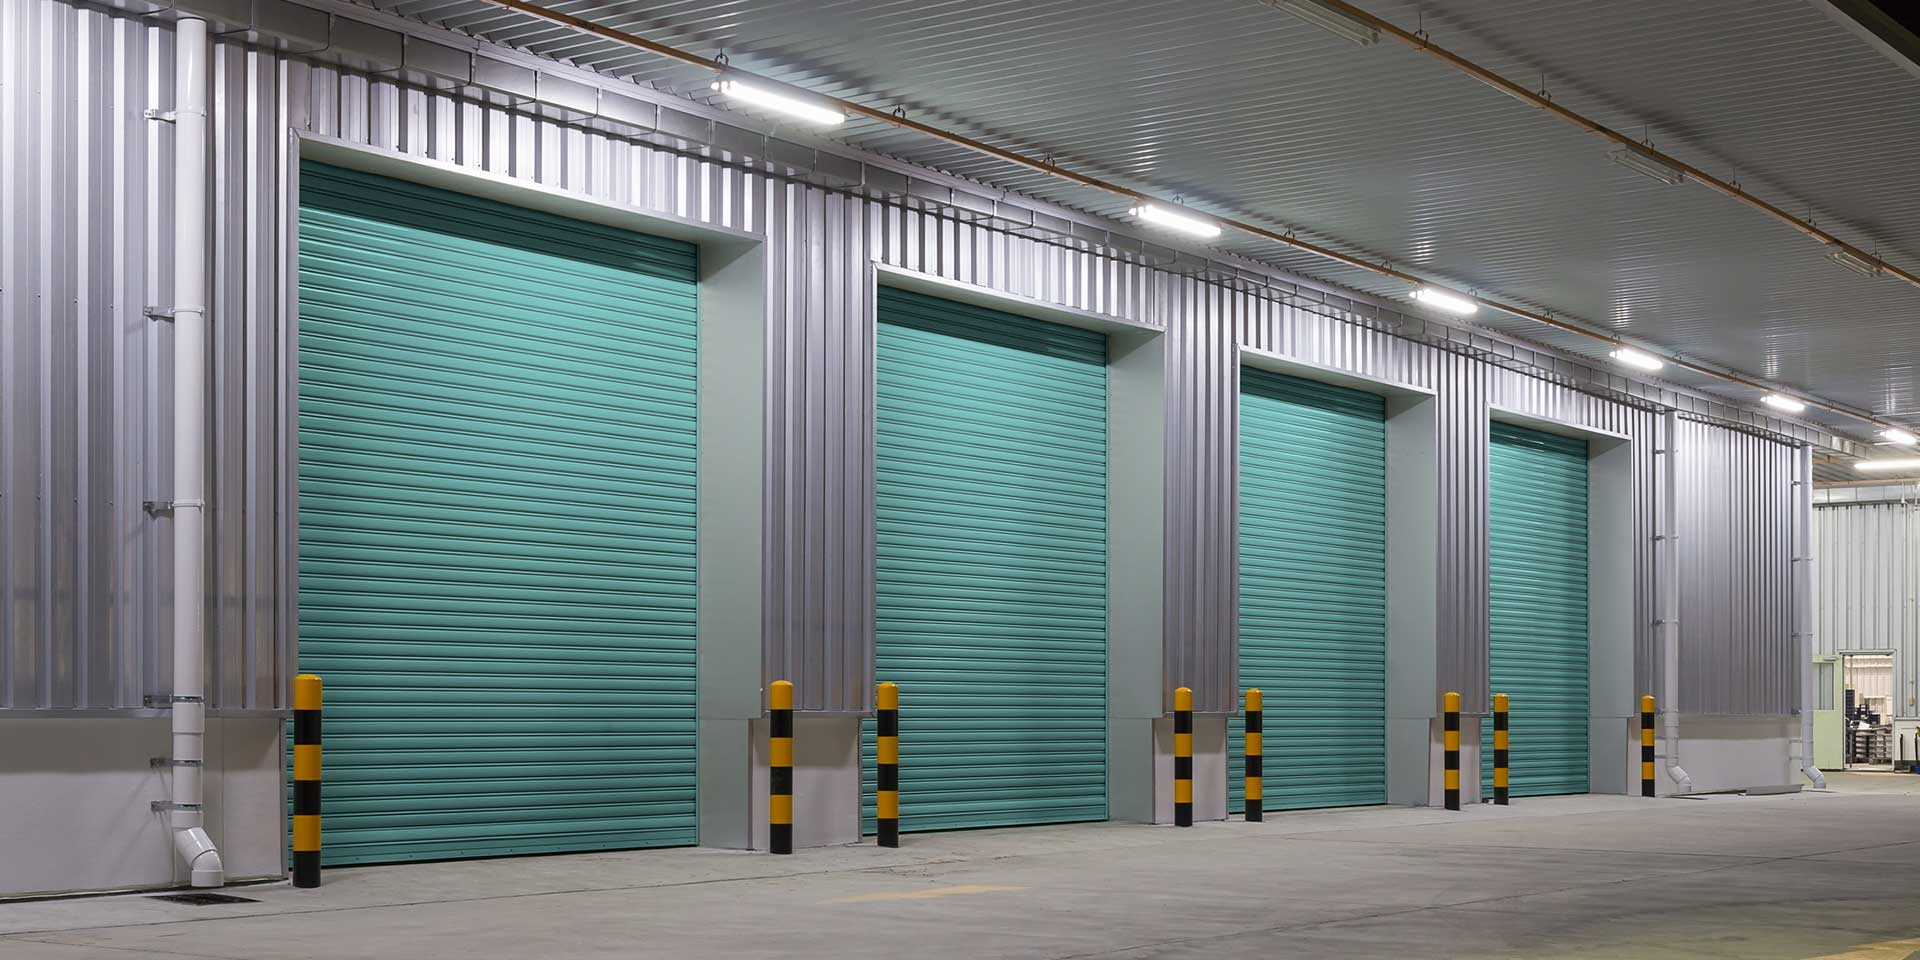 Commercial Garage Doors   Baltimore, MD   Baltimore Precision Door, Inc.